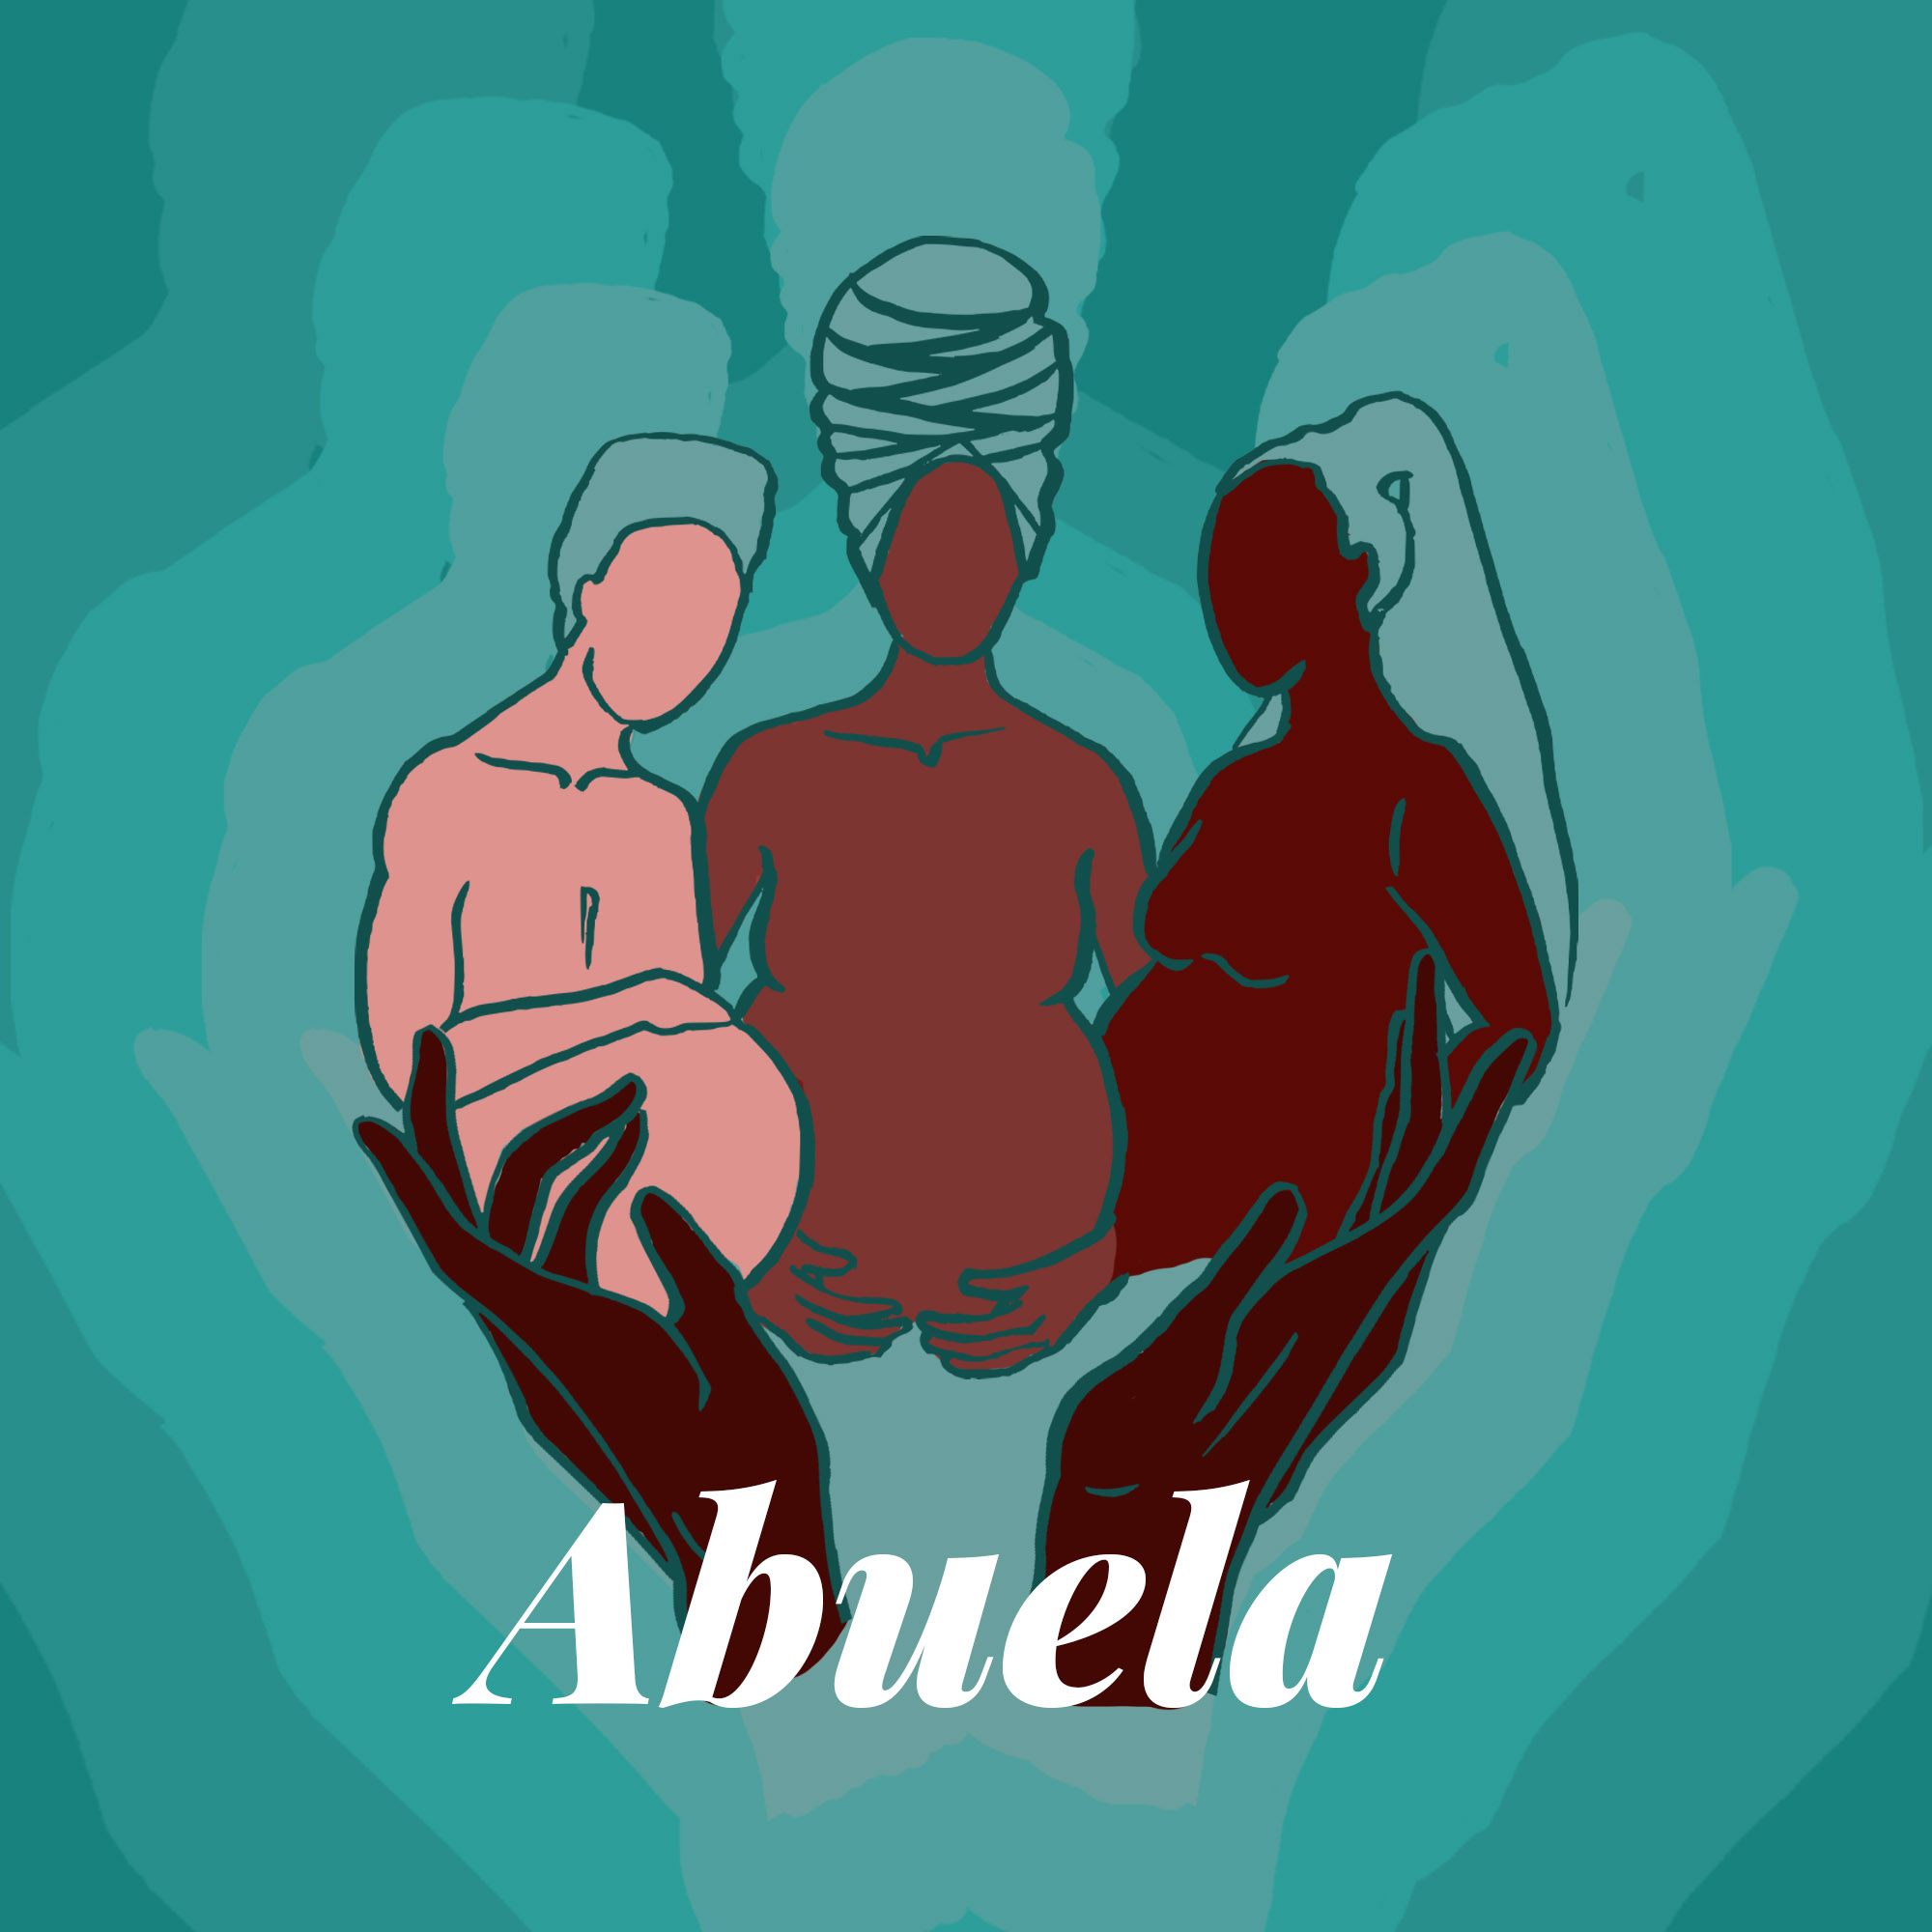 """Three people, wearing headwraps, being """"held"""" by a pair of hands with the word Abuela at the bottom"""